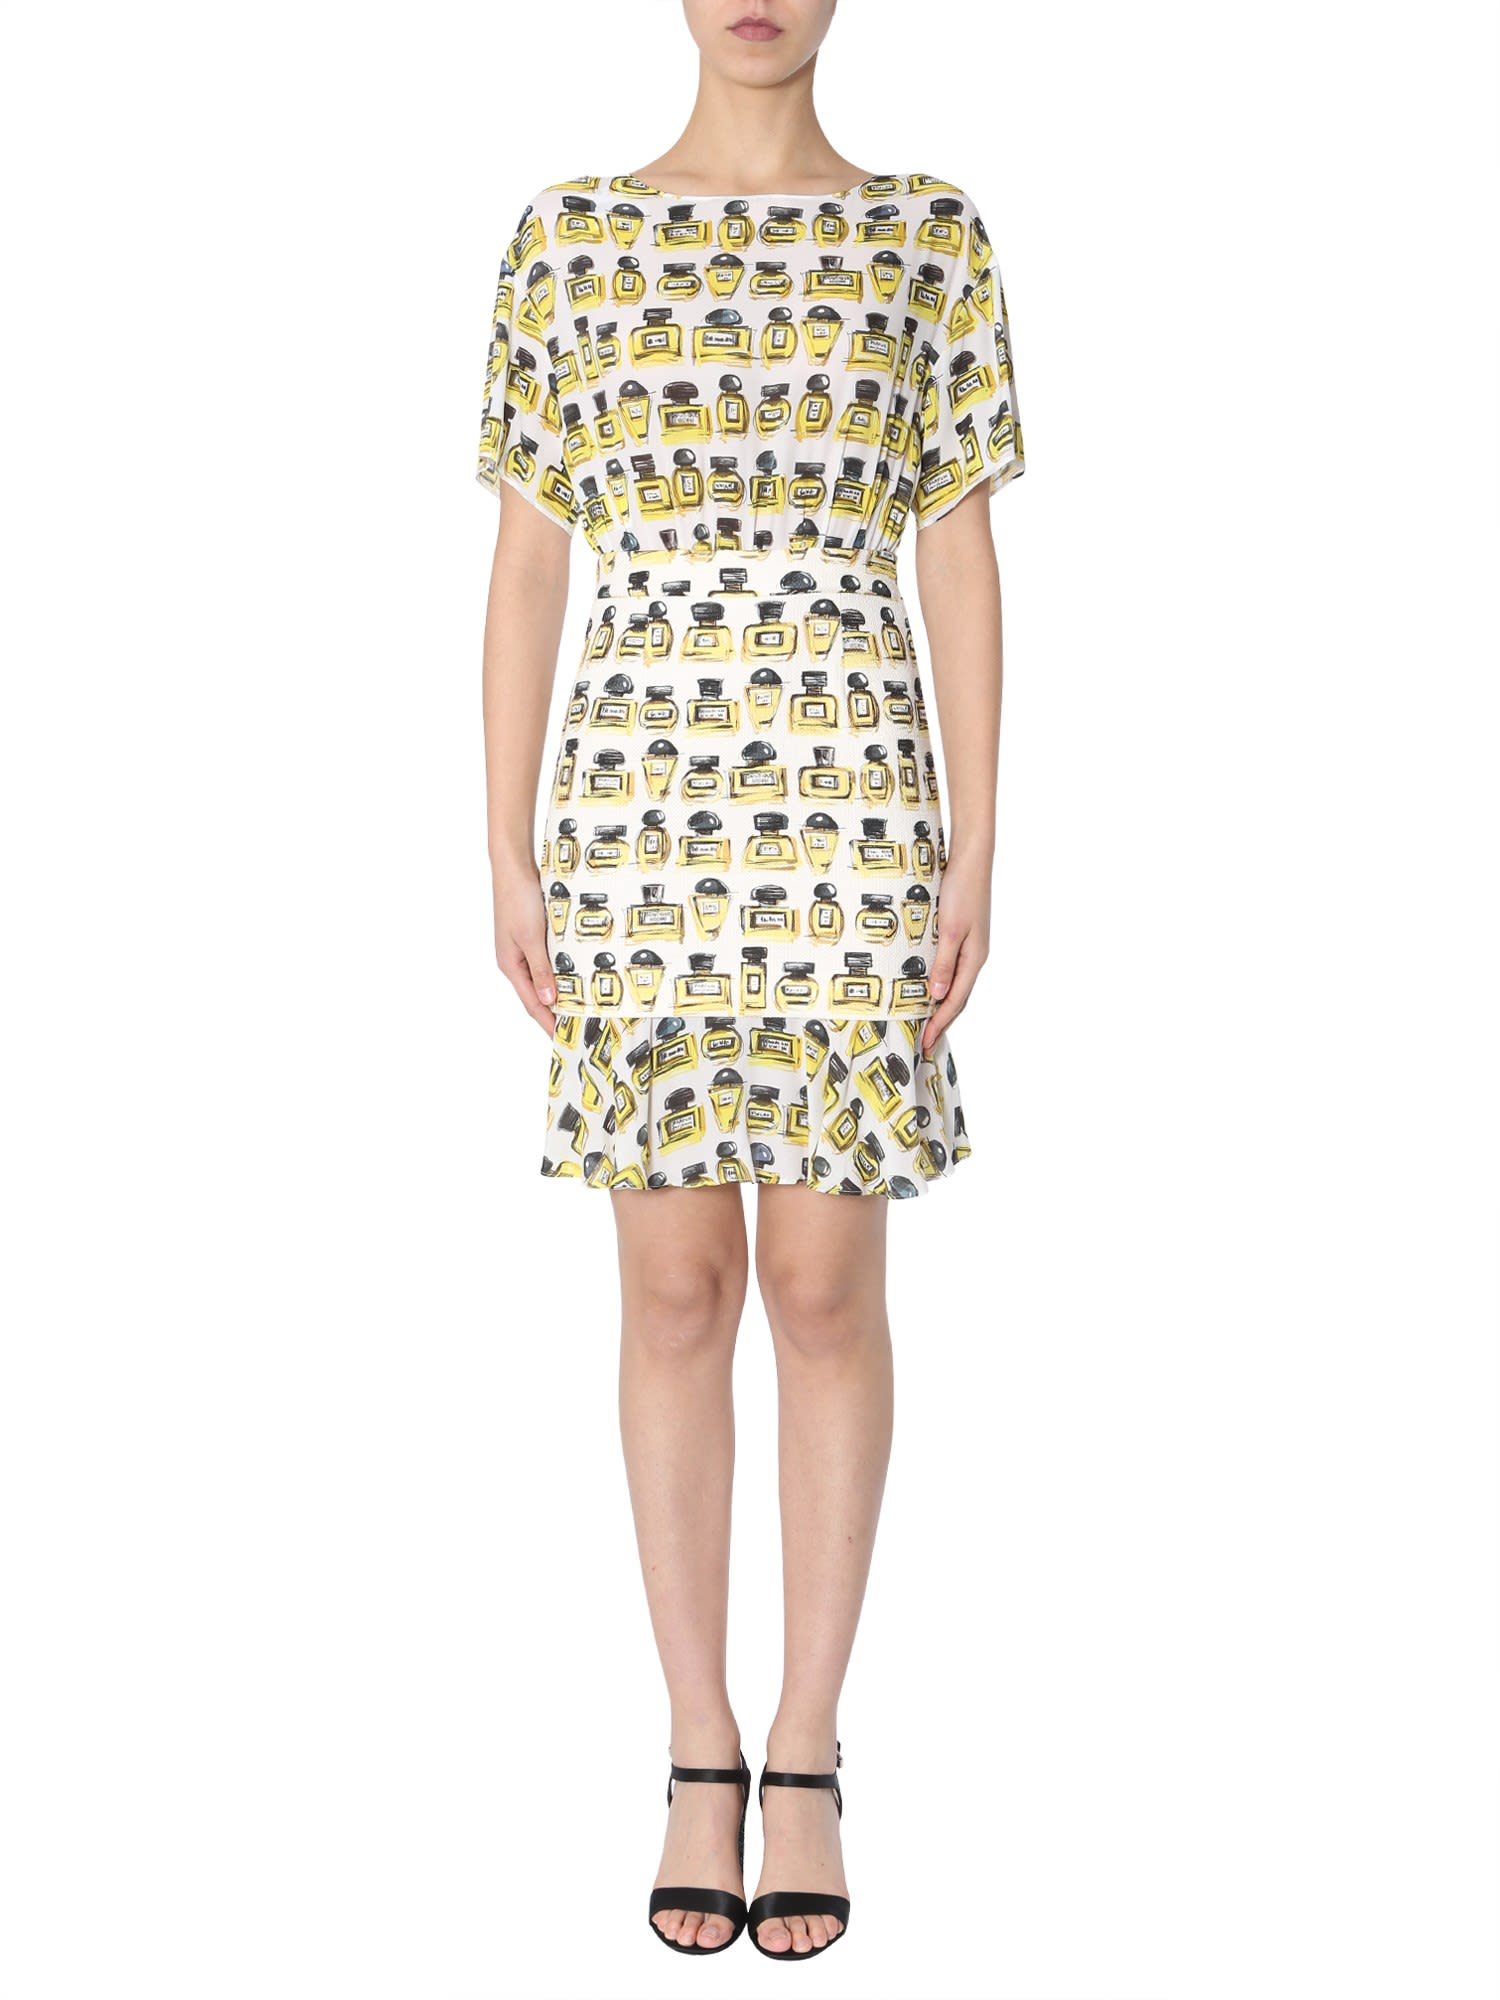 Boutique Moschino Printed Dress